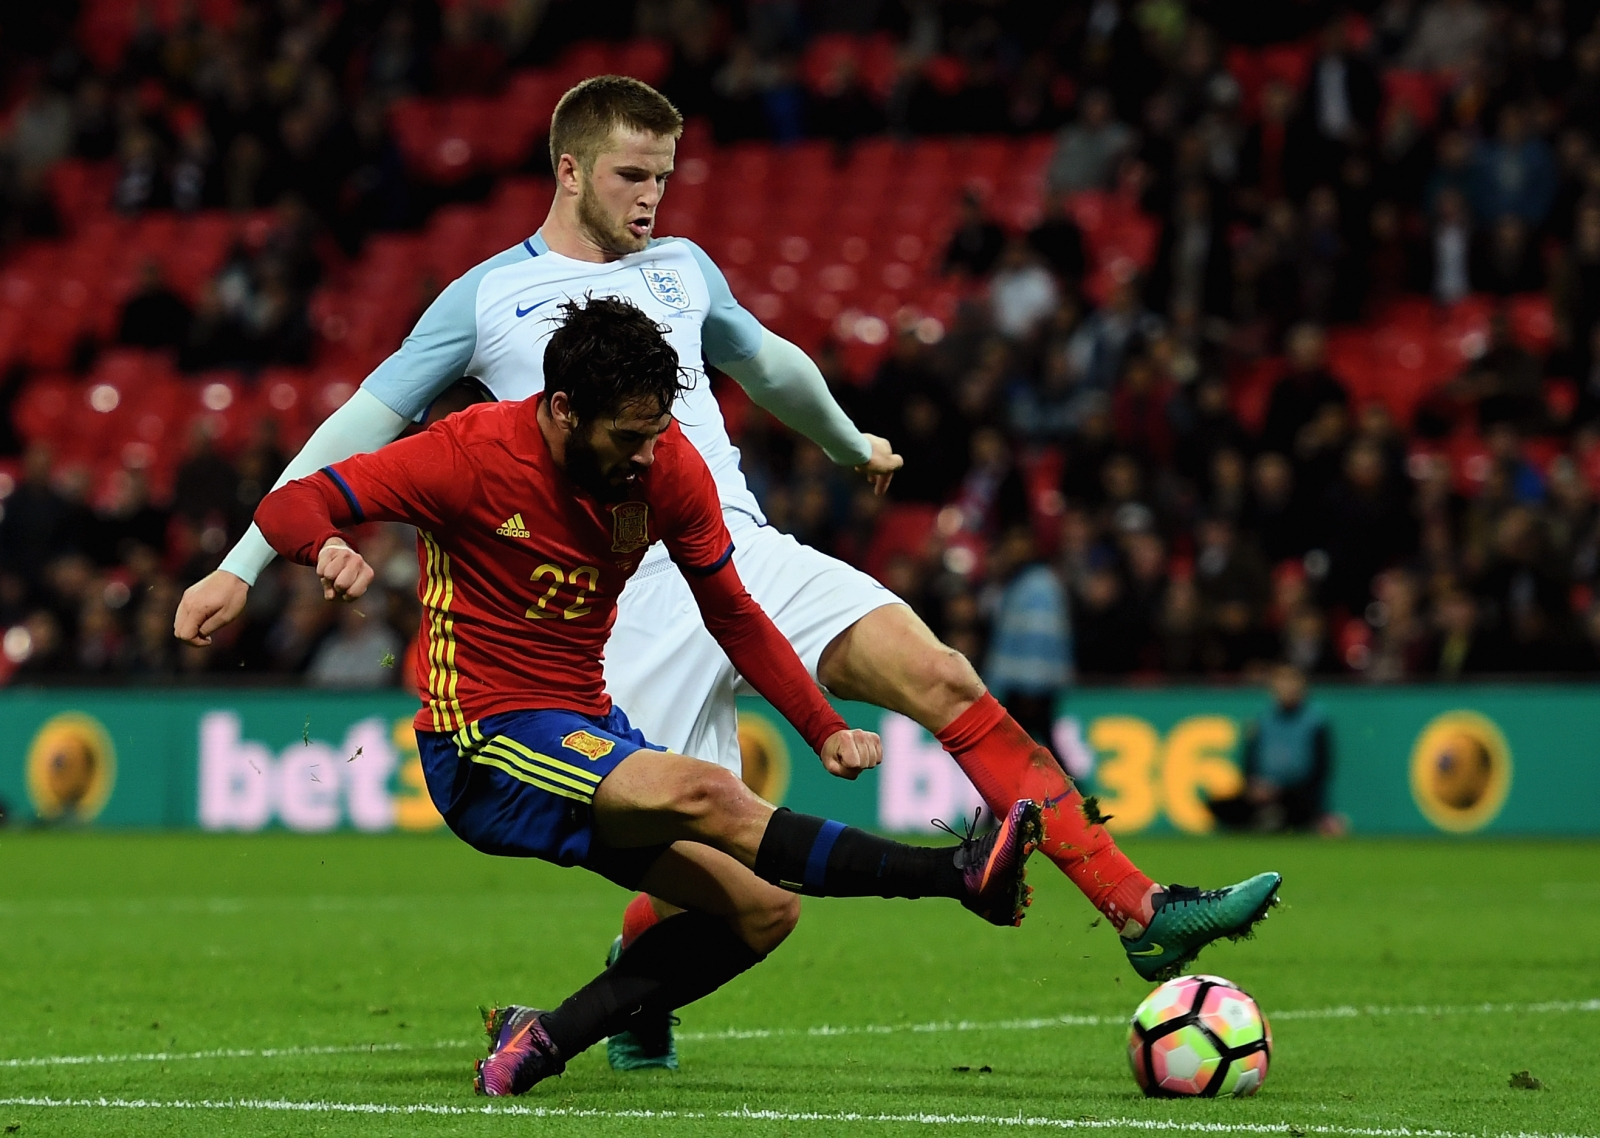 England man Eric Dier: Age is just a number, we need trophies